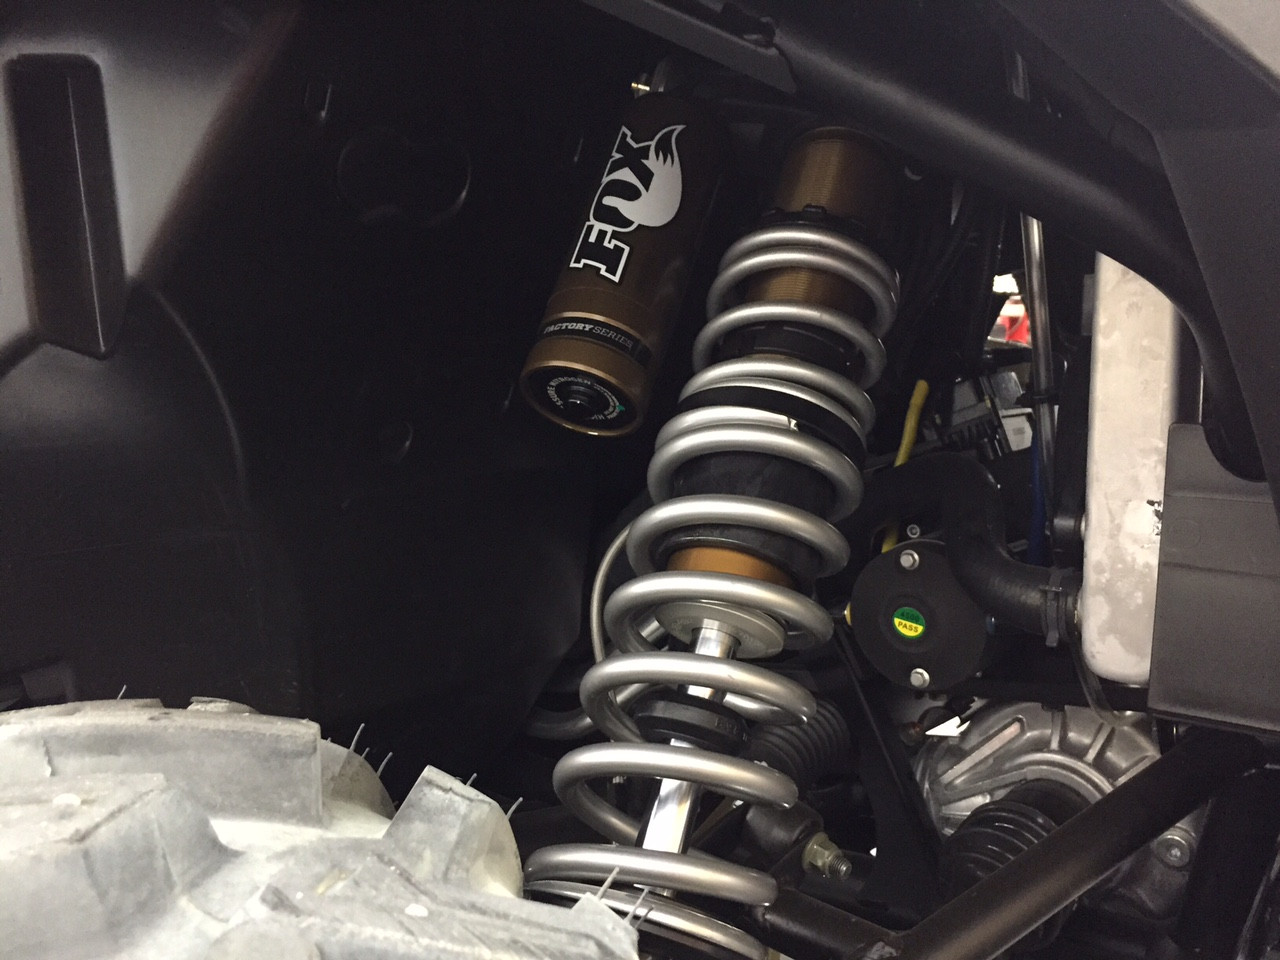 Front shock installed with dual rate springs